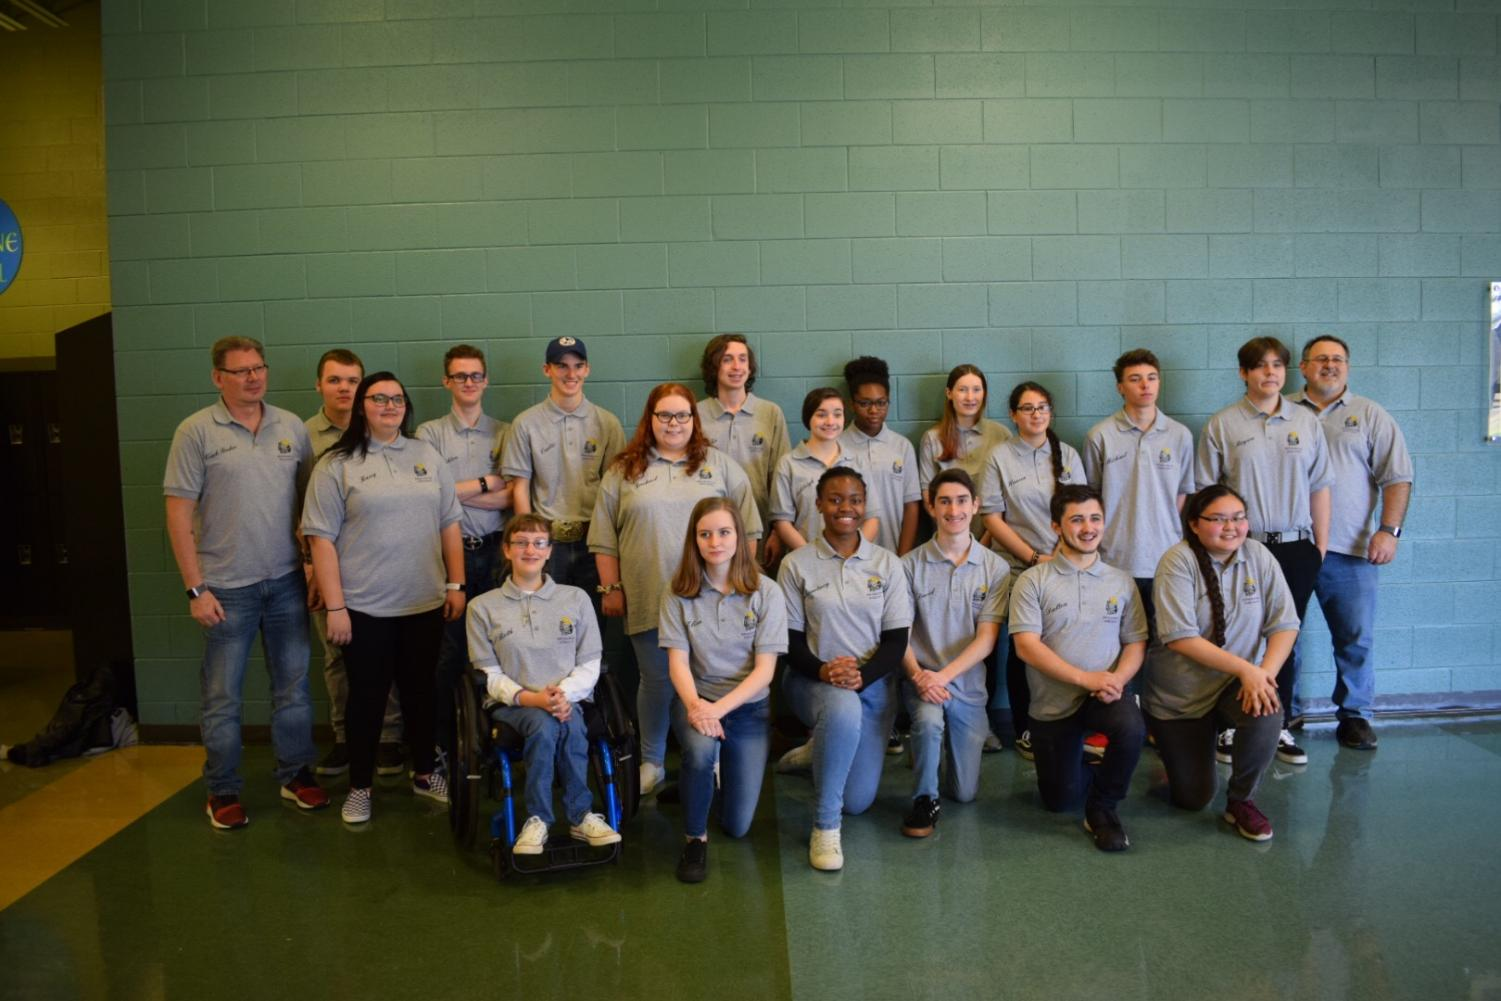 Menchville's archery team placed first in their regional tournament Monday, January 17, with a final score of 3221.